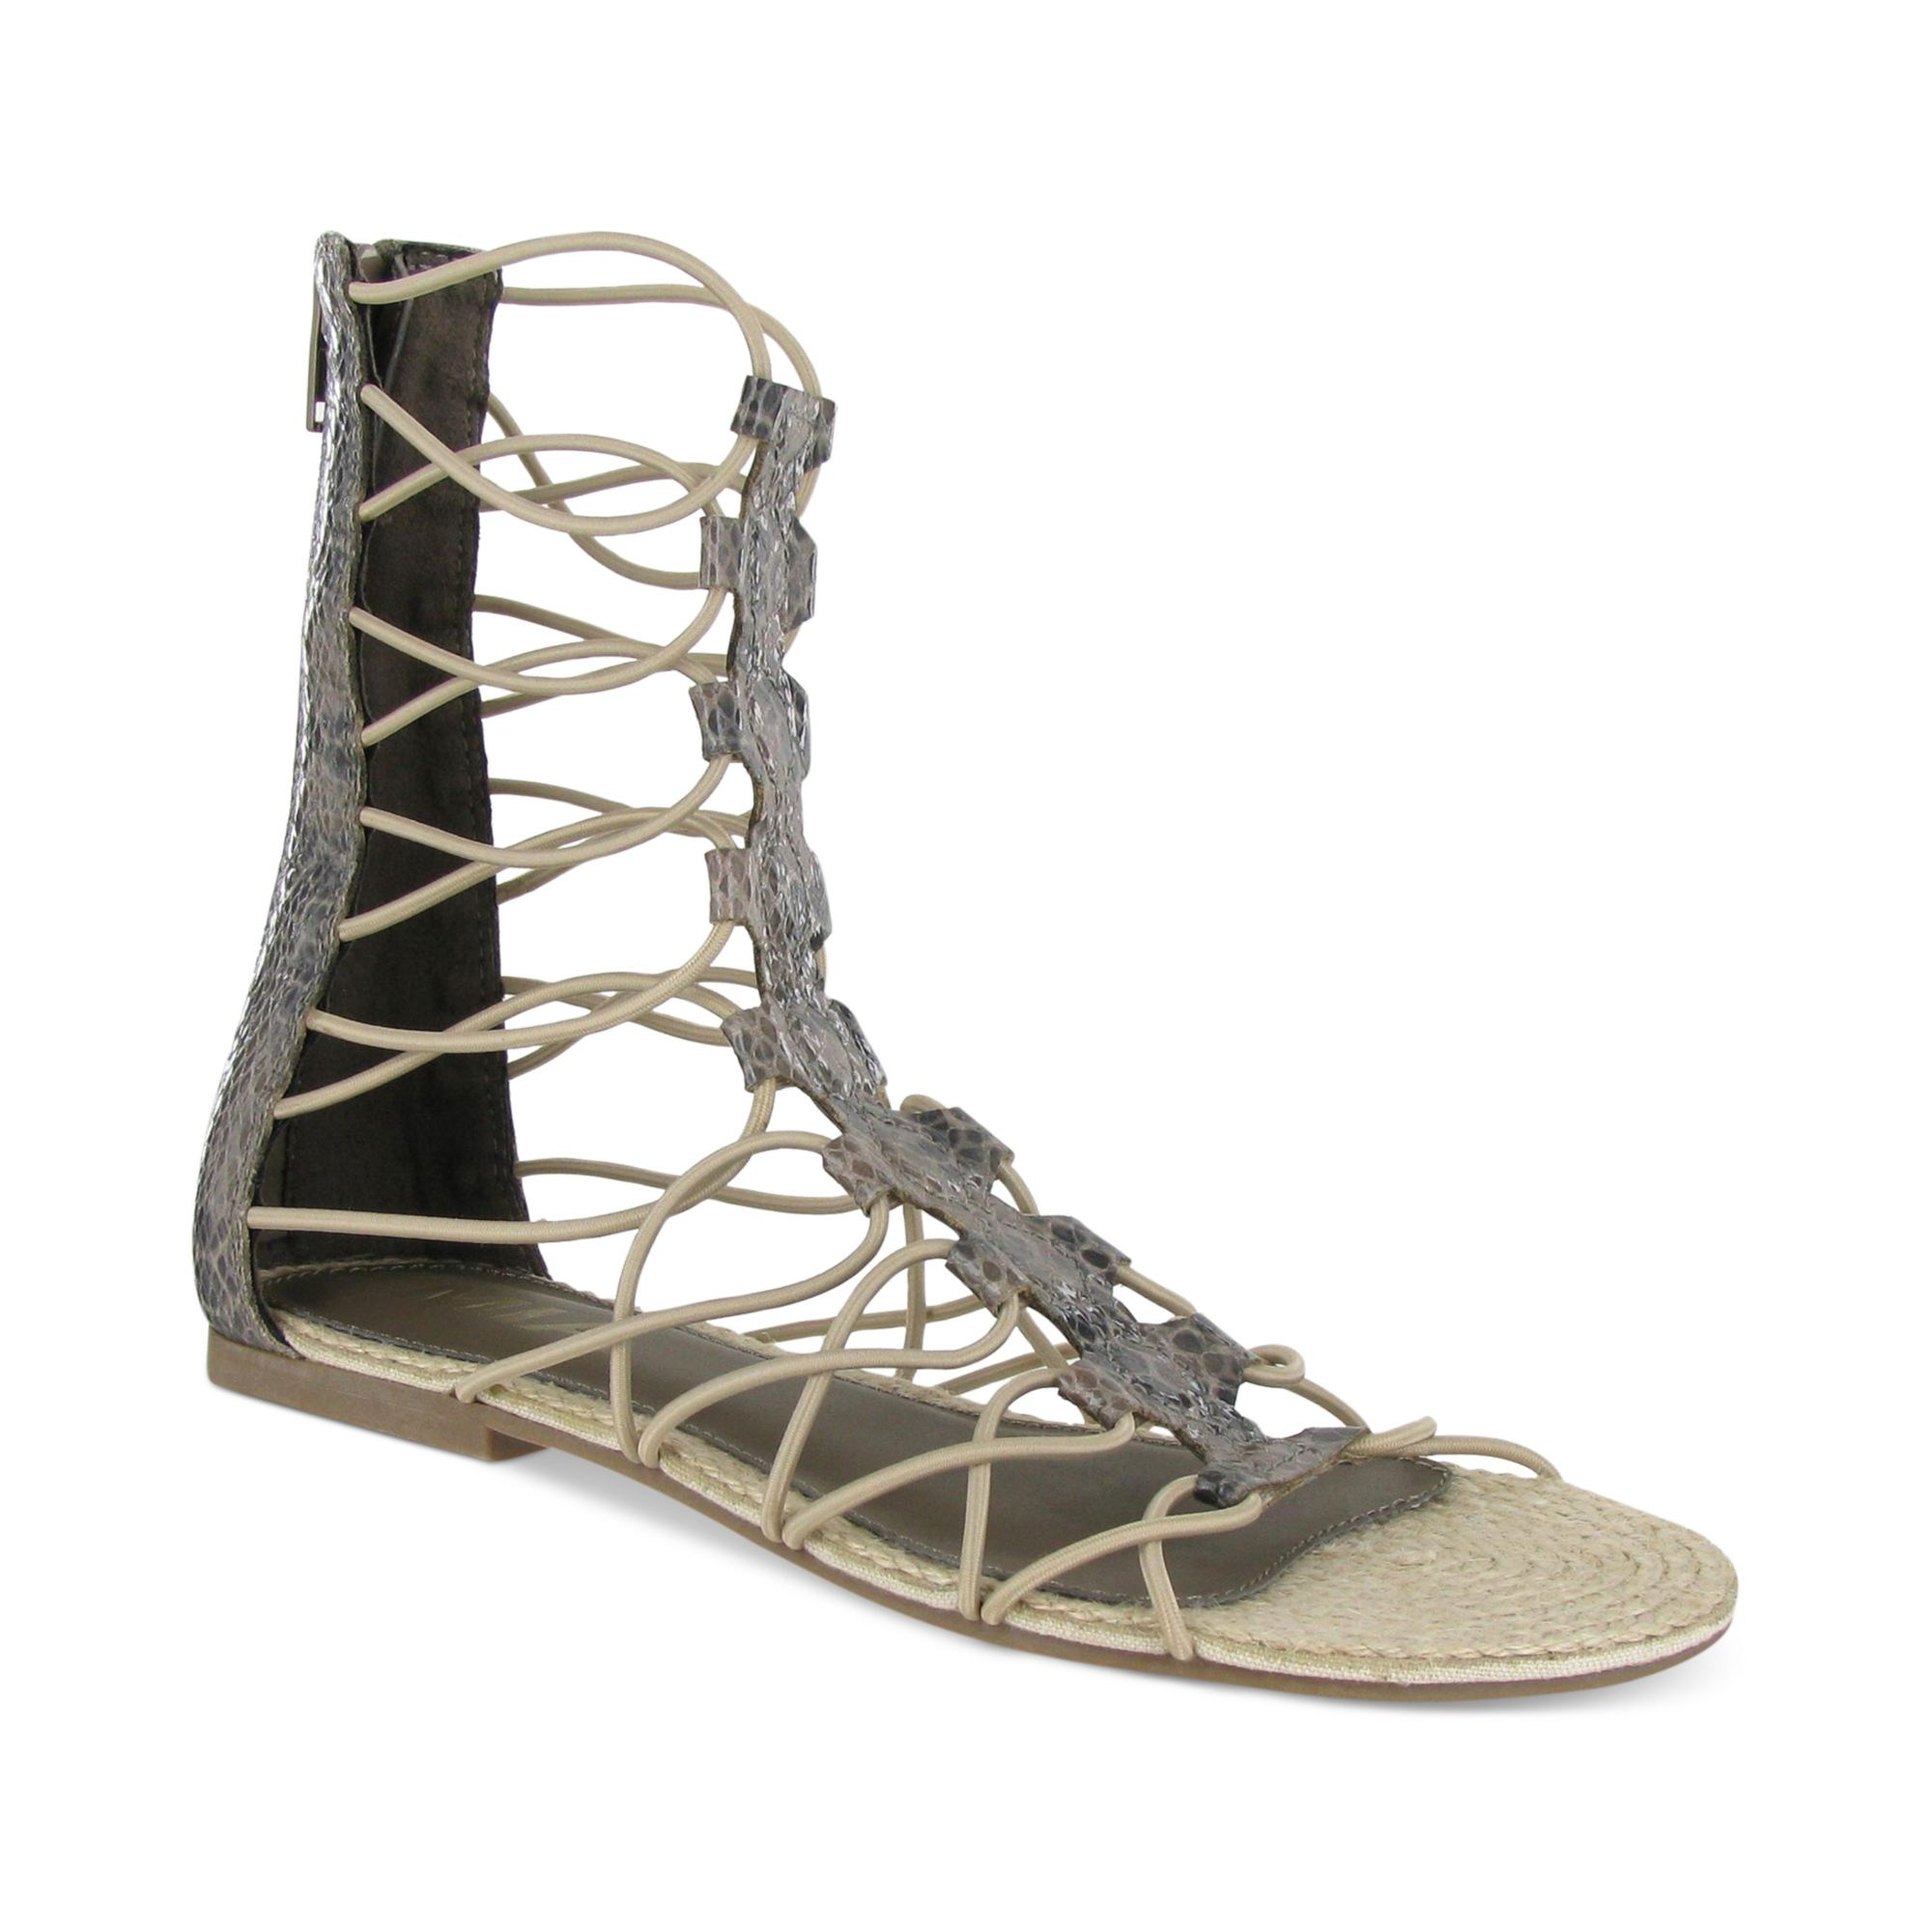 Lyst Mia Livi Gladiator Sandals In Natural